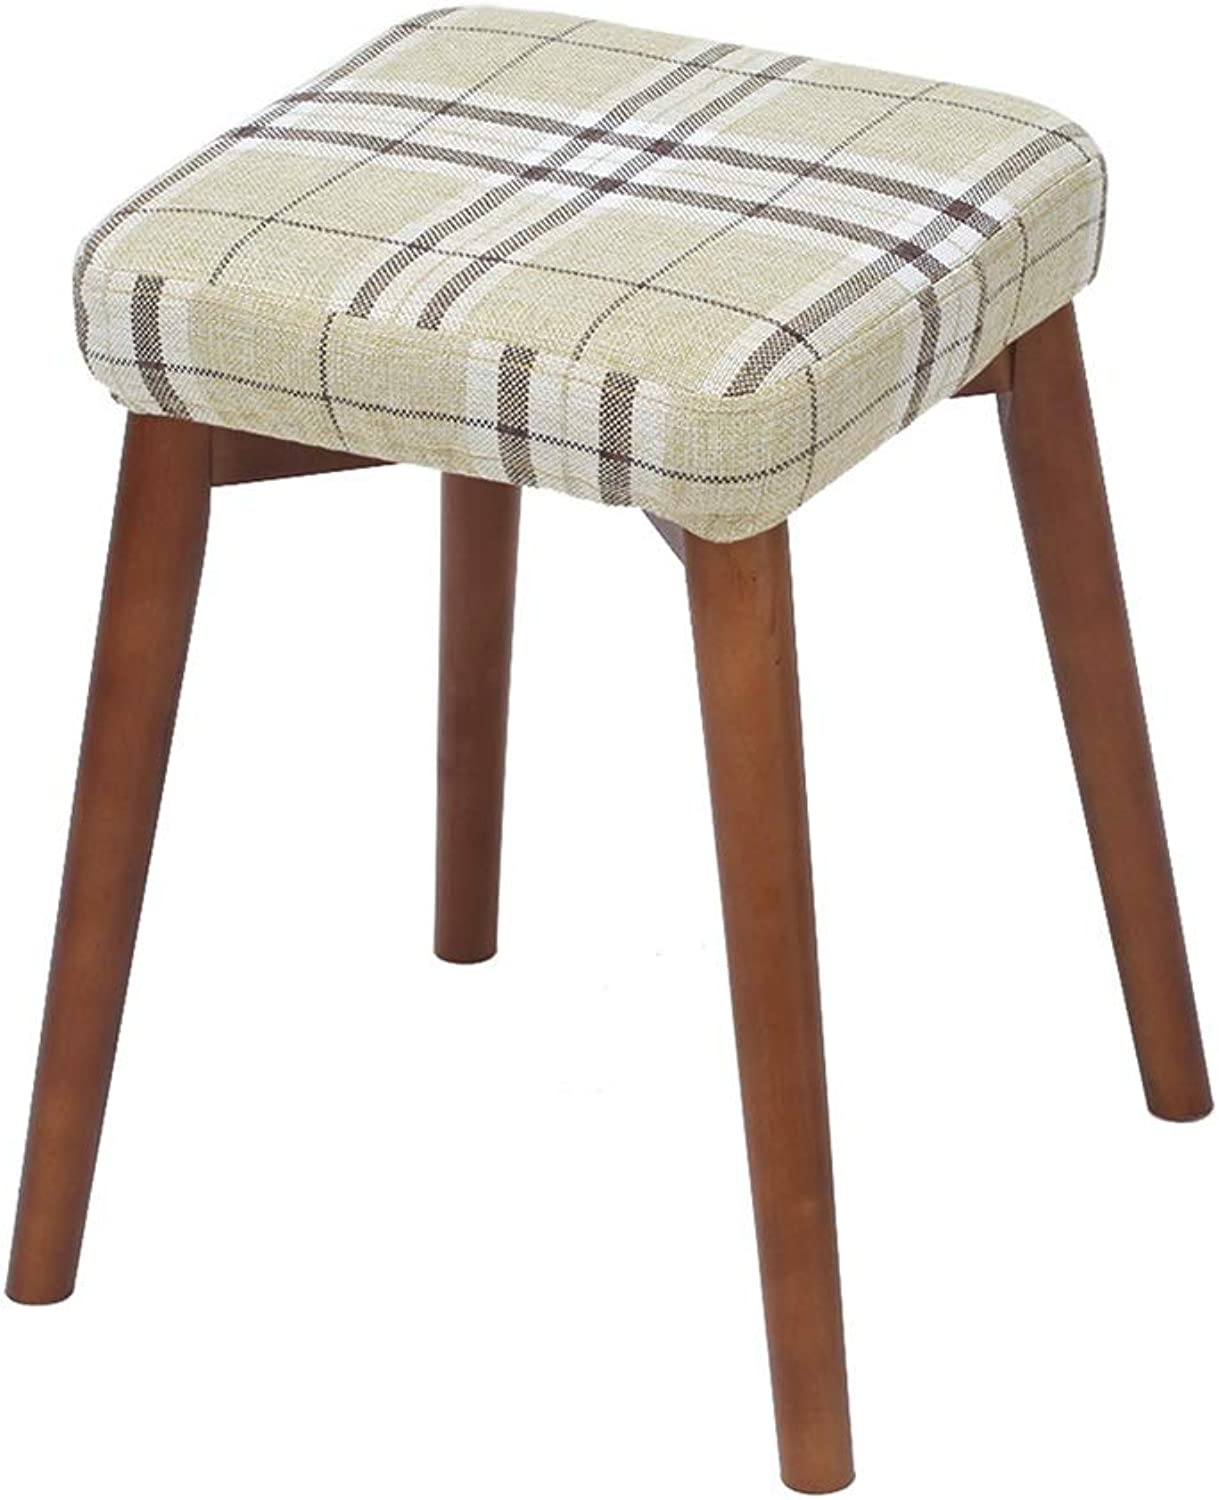 Solid Wood Stool Creative shoes Bench Fashion Fabric Dressing Stool Modern Simple Home Adult Dining Stool High Resilience Sponges Seat Height 75 cm